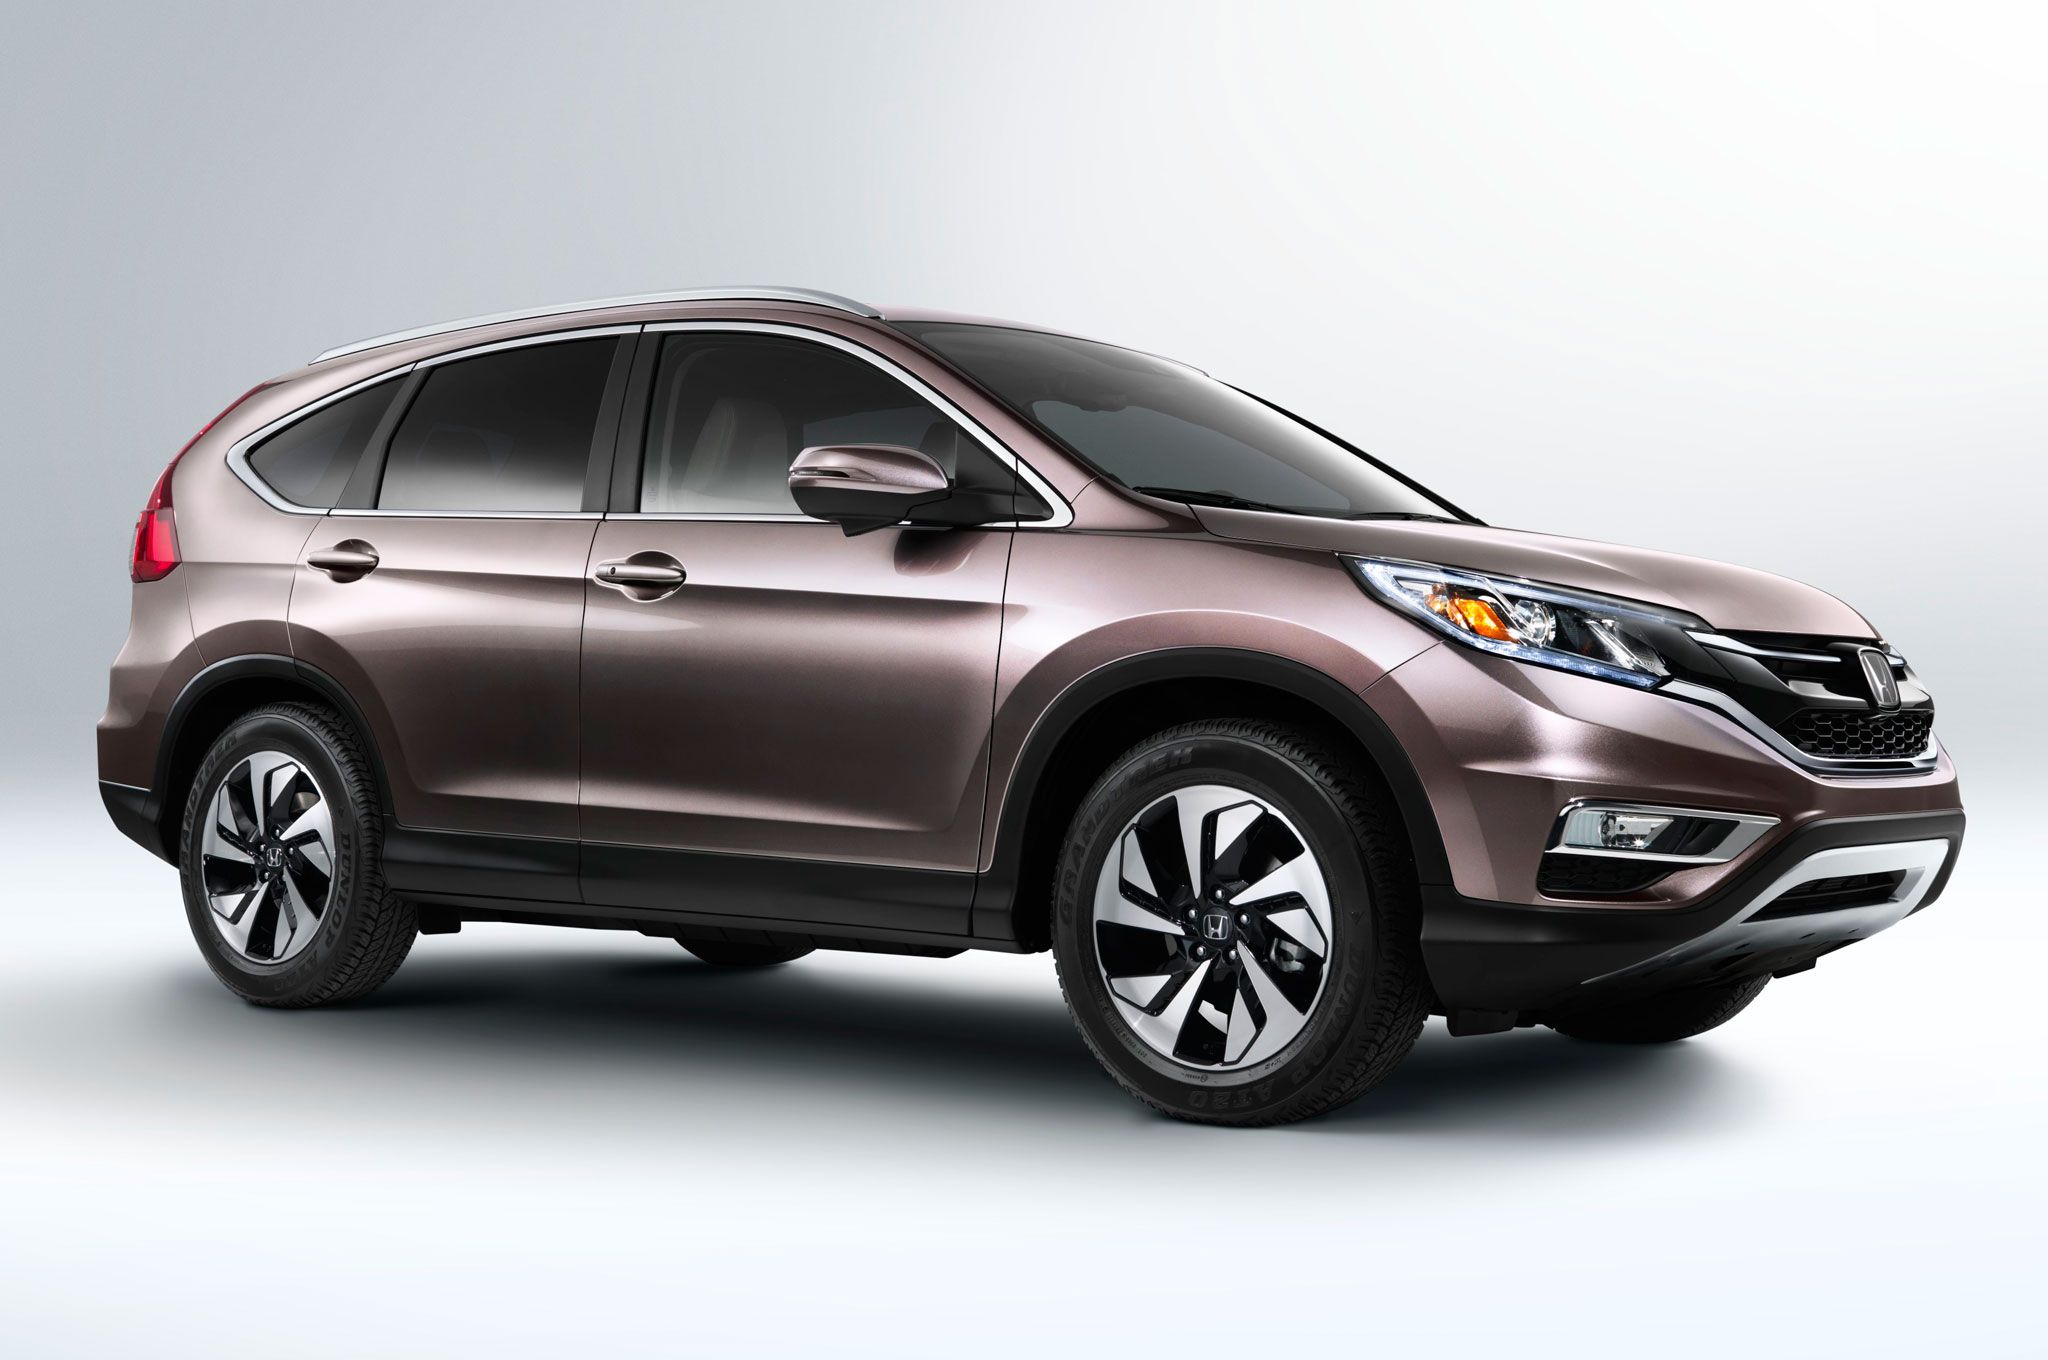 2015 honda cr v review rh automobilemag com